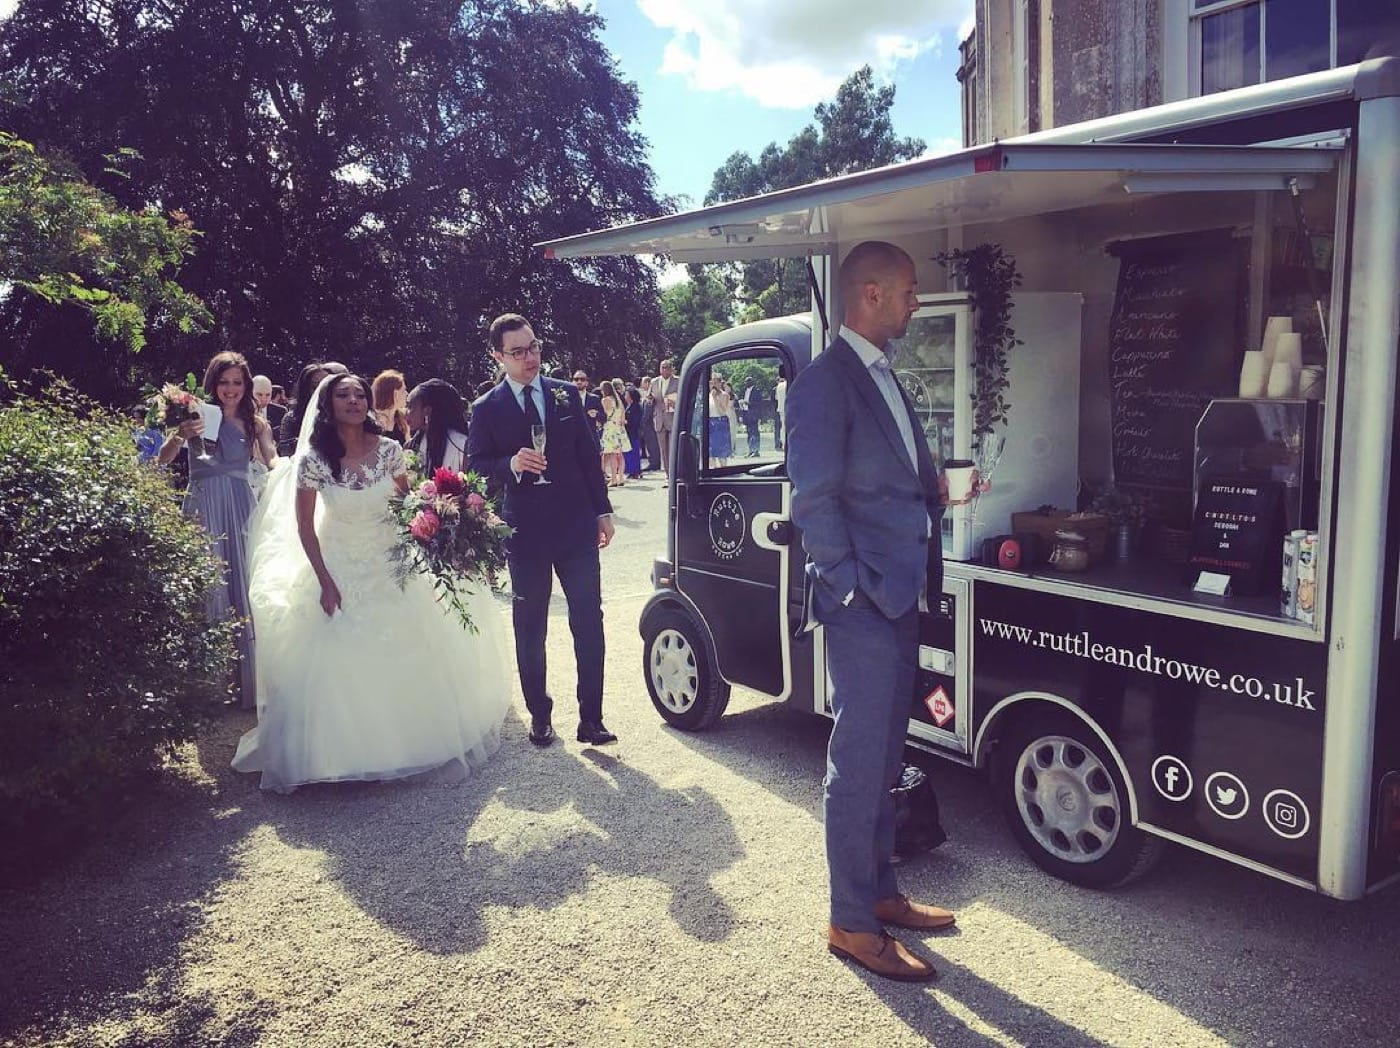 Feast-It-Ruttle-and-Rowe-Mobile-Coffee-Van-Street-Food-Espresso-Martinis-Speciality-Coffee-Event-Catering-Wedding-Catering-Book-Now-five